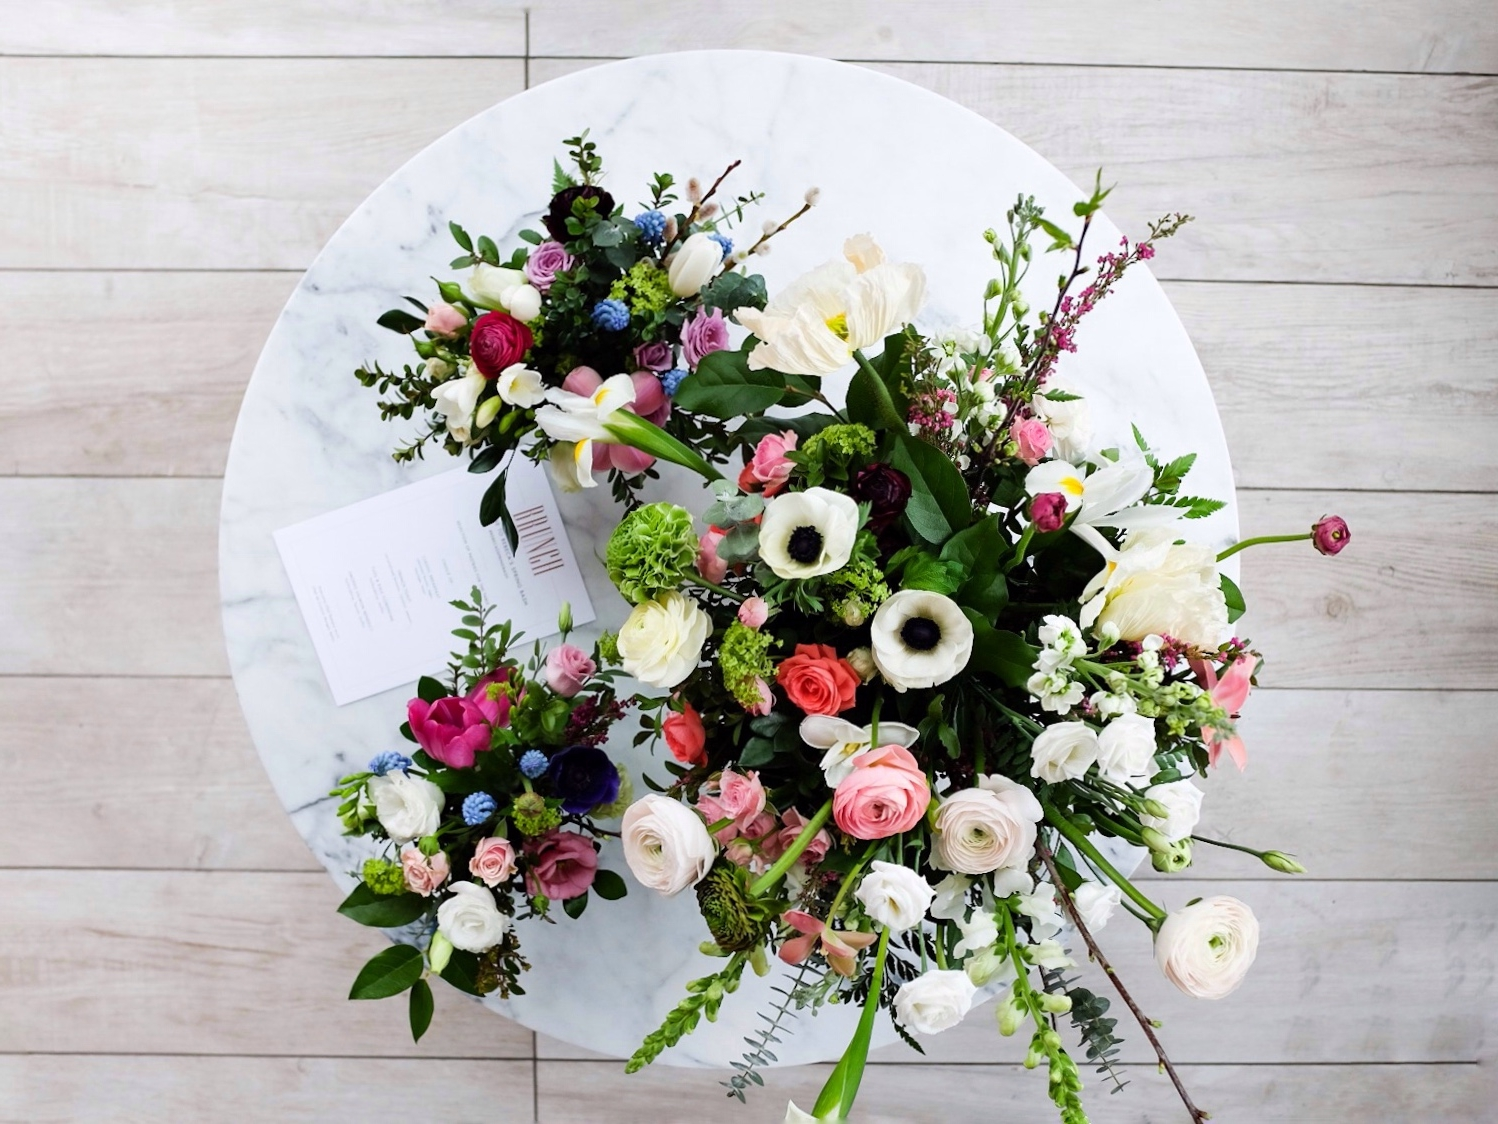 Gorgeous flower arrangements for the blogger event by Wild North Flowers.